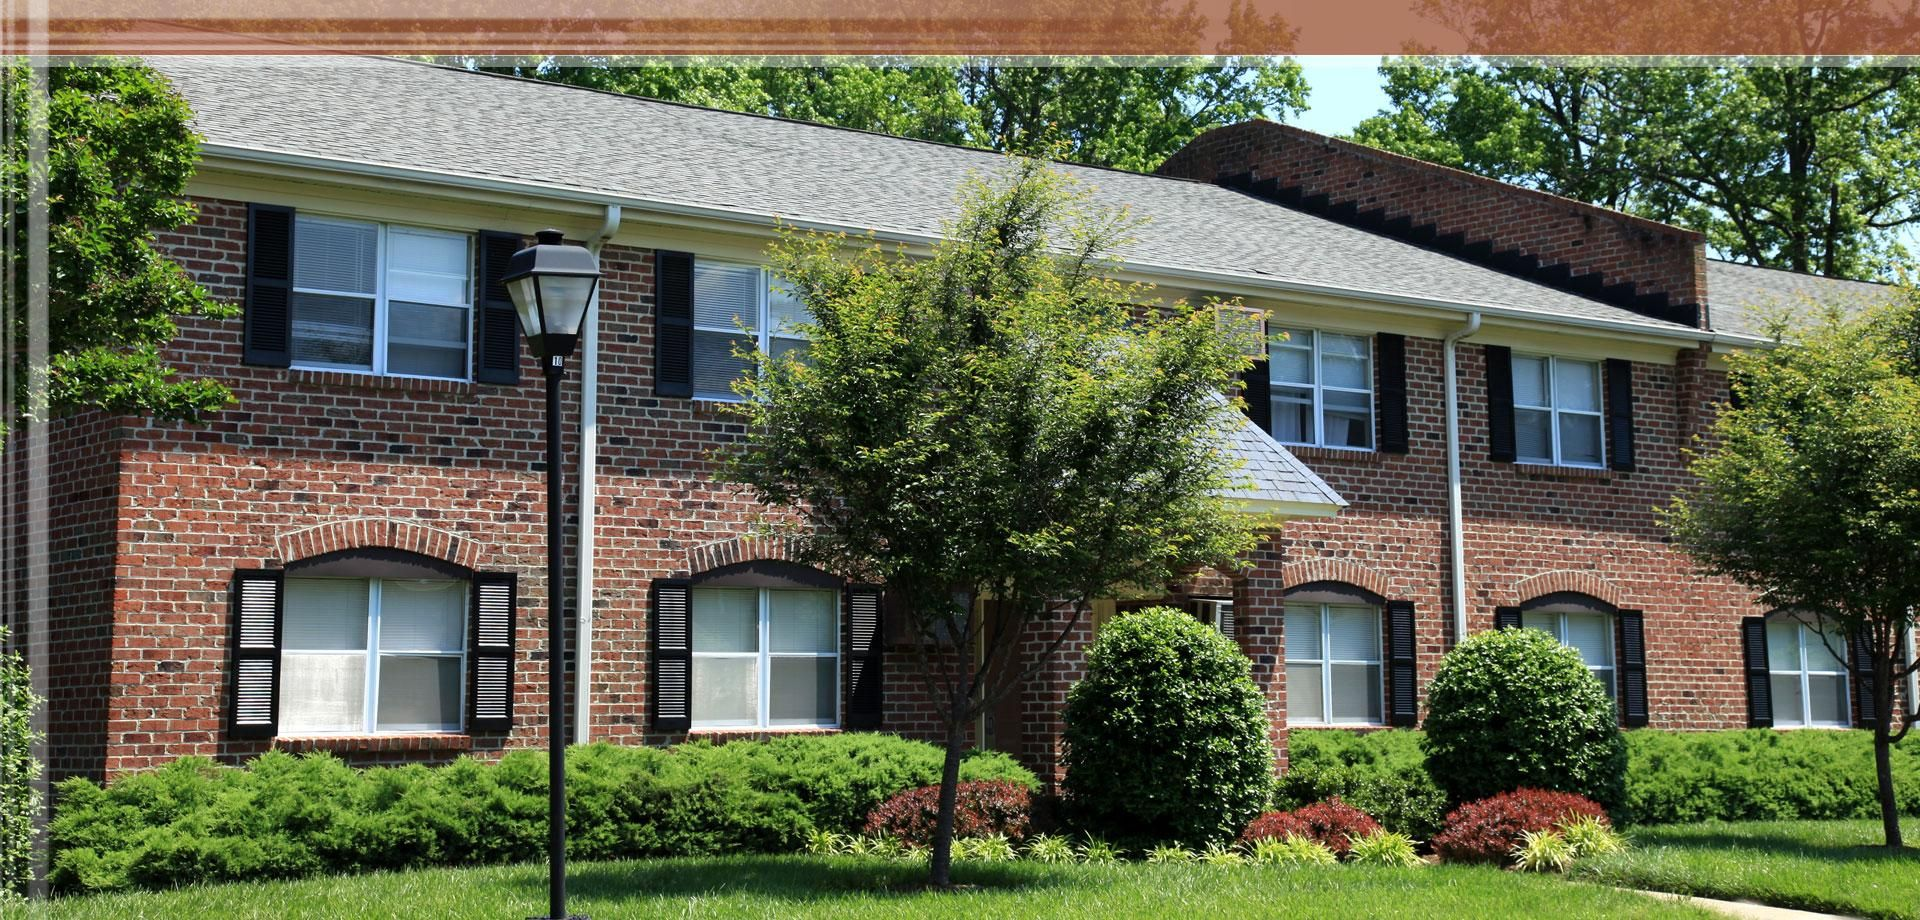 Lake Bradford Apartments Apartment Homes In Virginia Beach Va Virginia Beach Apartment Two Bedroom Floor Plan